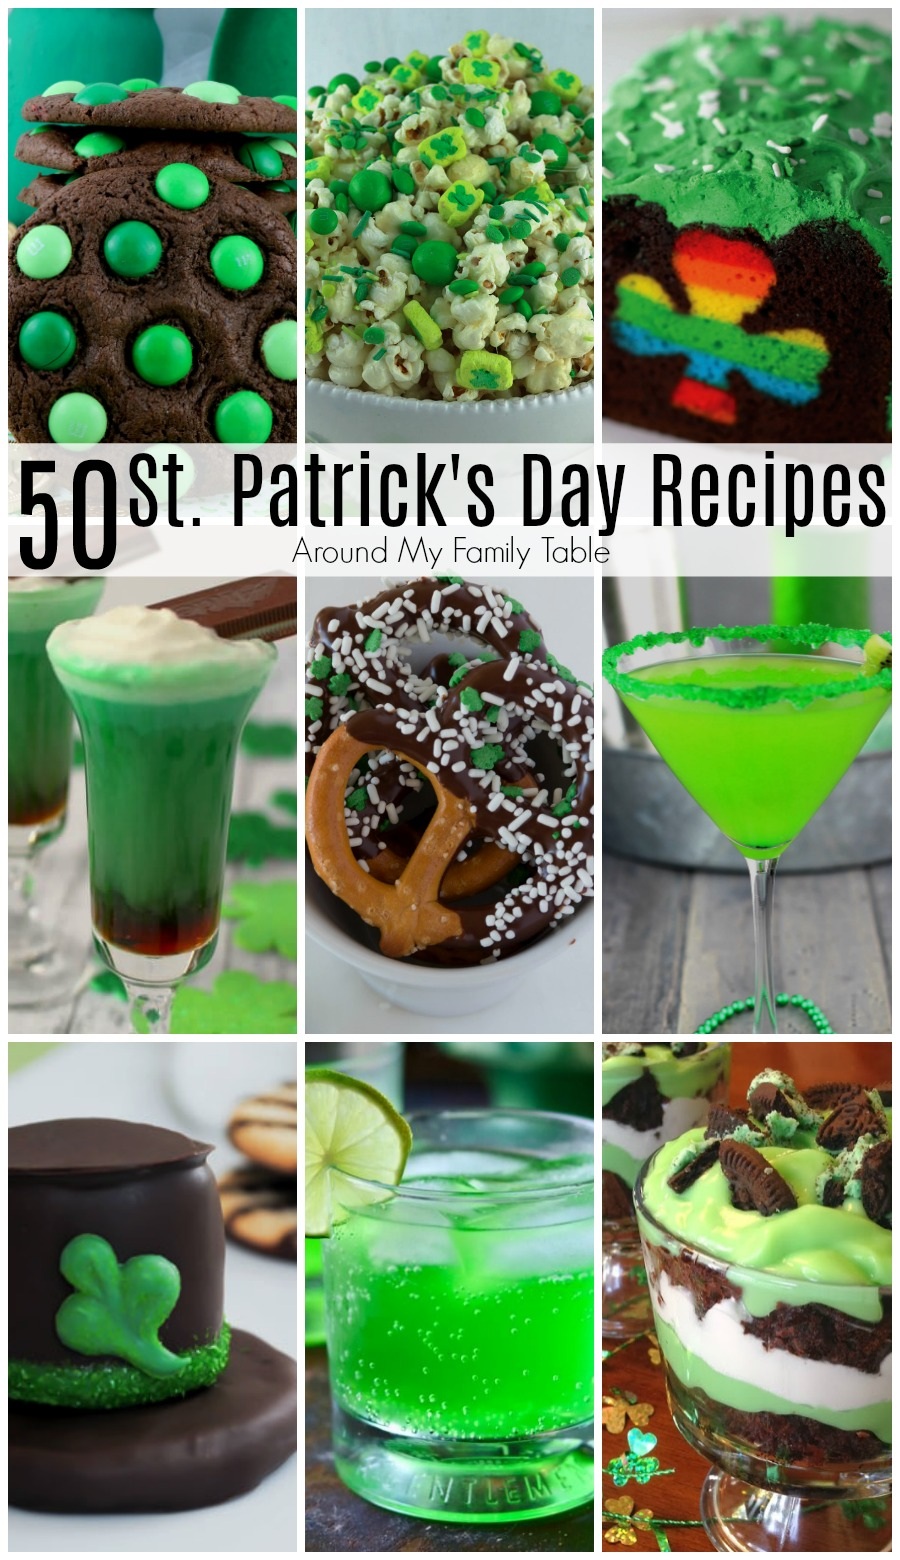 This collection of St. Patrick's Day Recipes has 50 recipes to get you in the lucky Irish spirit! From appetizers to desserts...you'll find everything you need for a delicious and fun holiday!